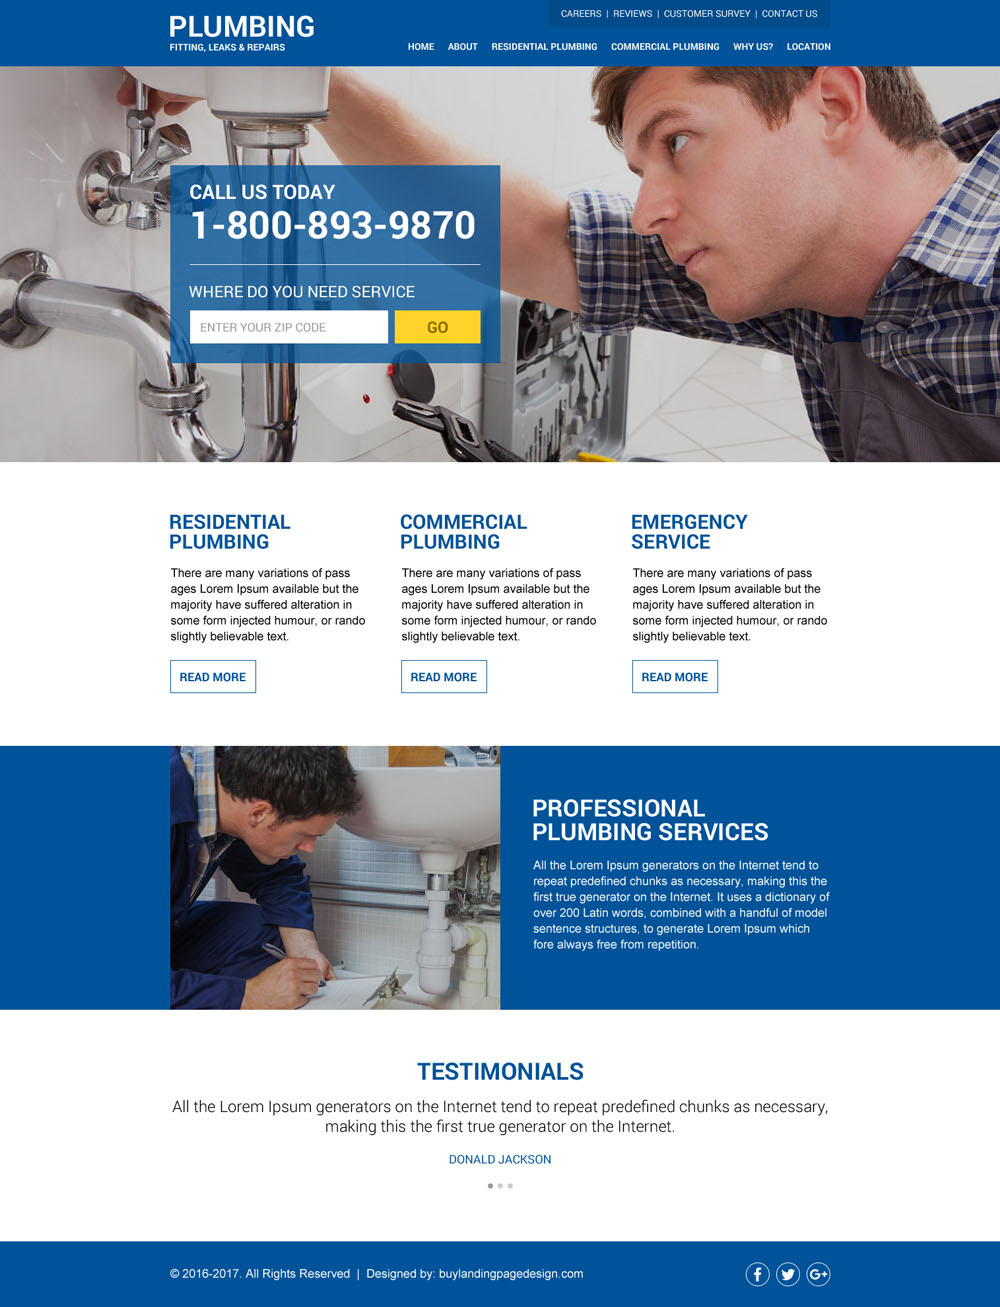 plumbing-service-html-website-template-to-capture-leads-001-index